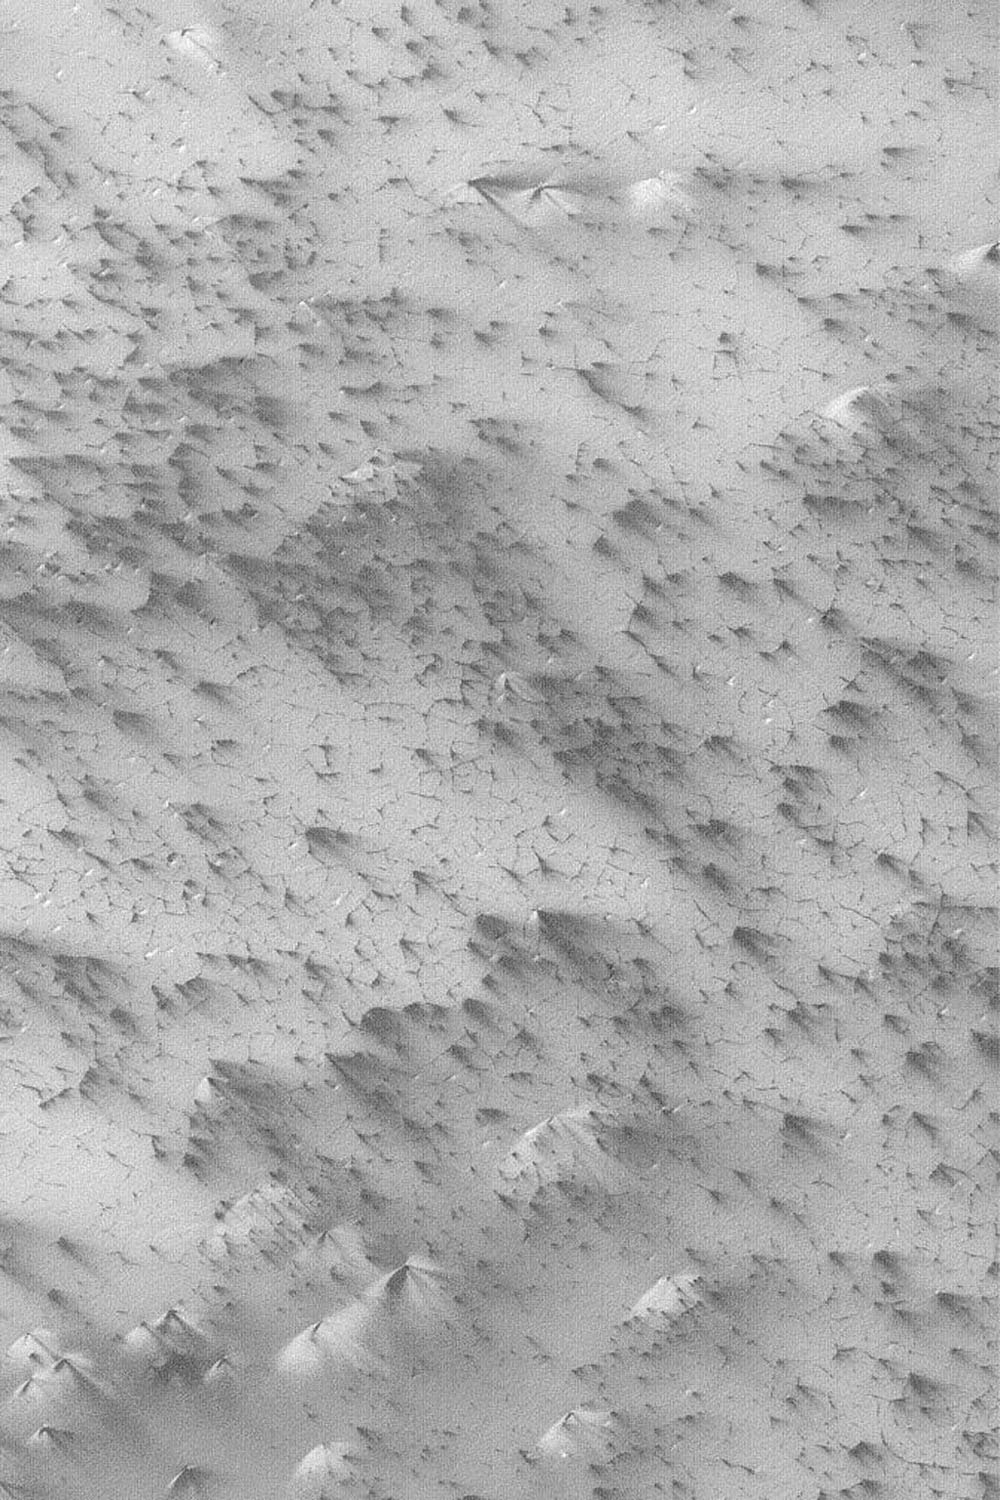 NASA's Mars Global Surveyor shows patterns created by defrosting processes on the martian south polar seasonal ice cap. Dark cracks form a polygon pattern, and wind blows material to form varied bright and dark streaks.